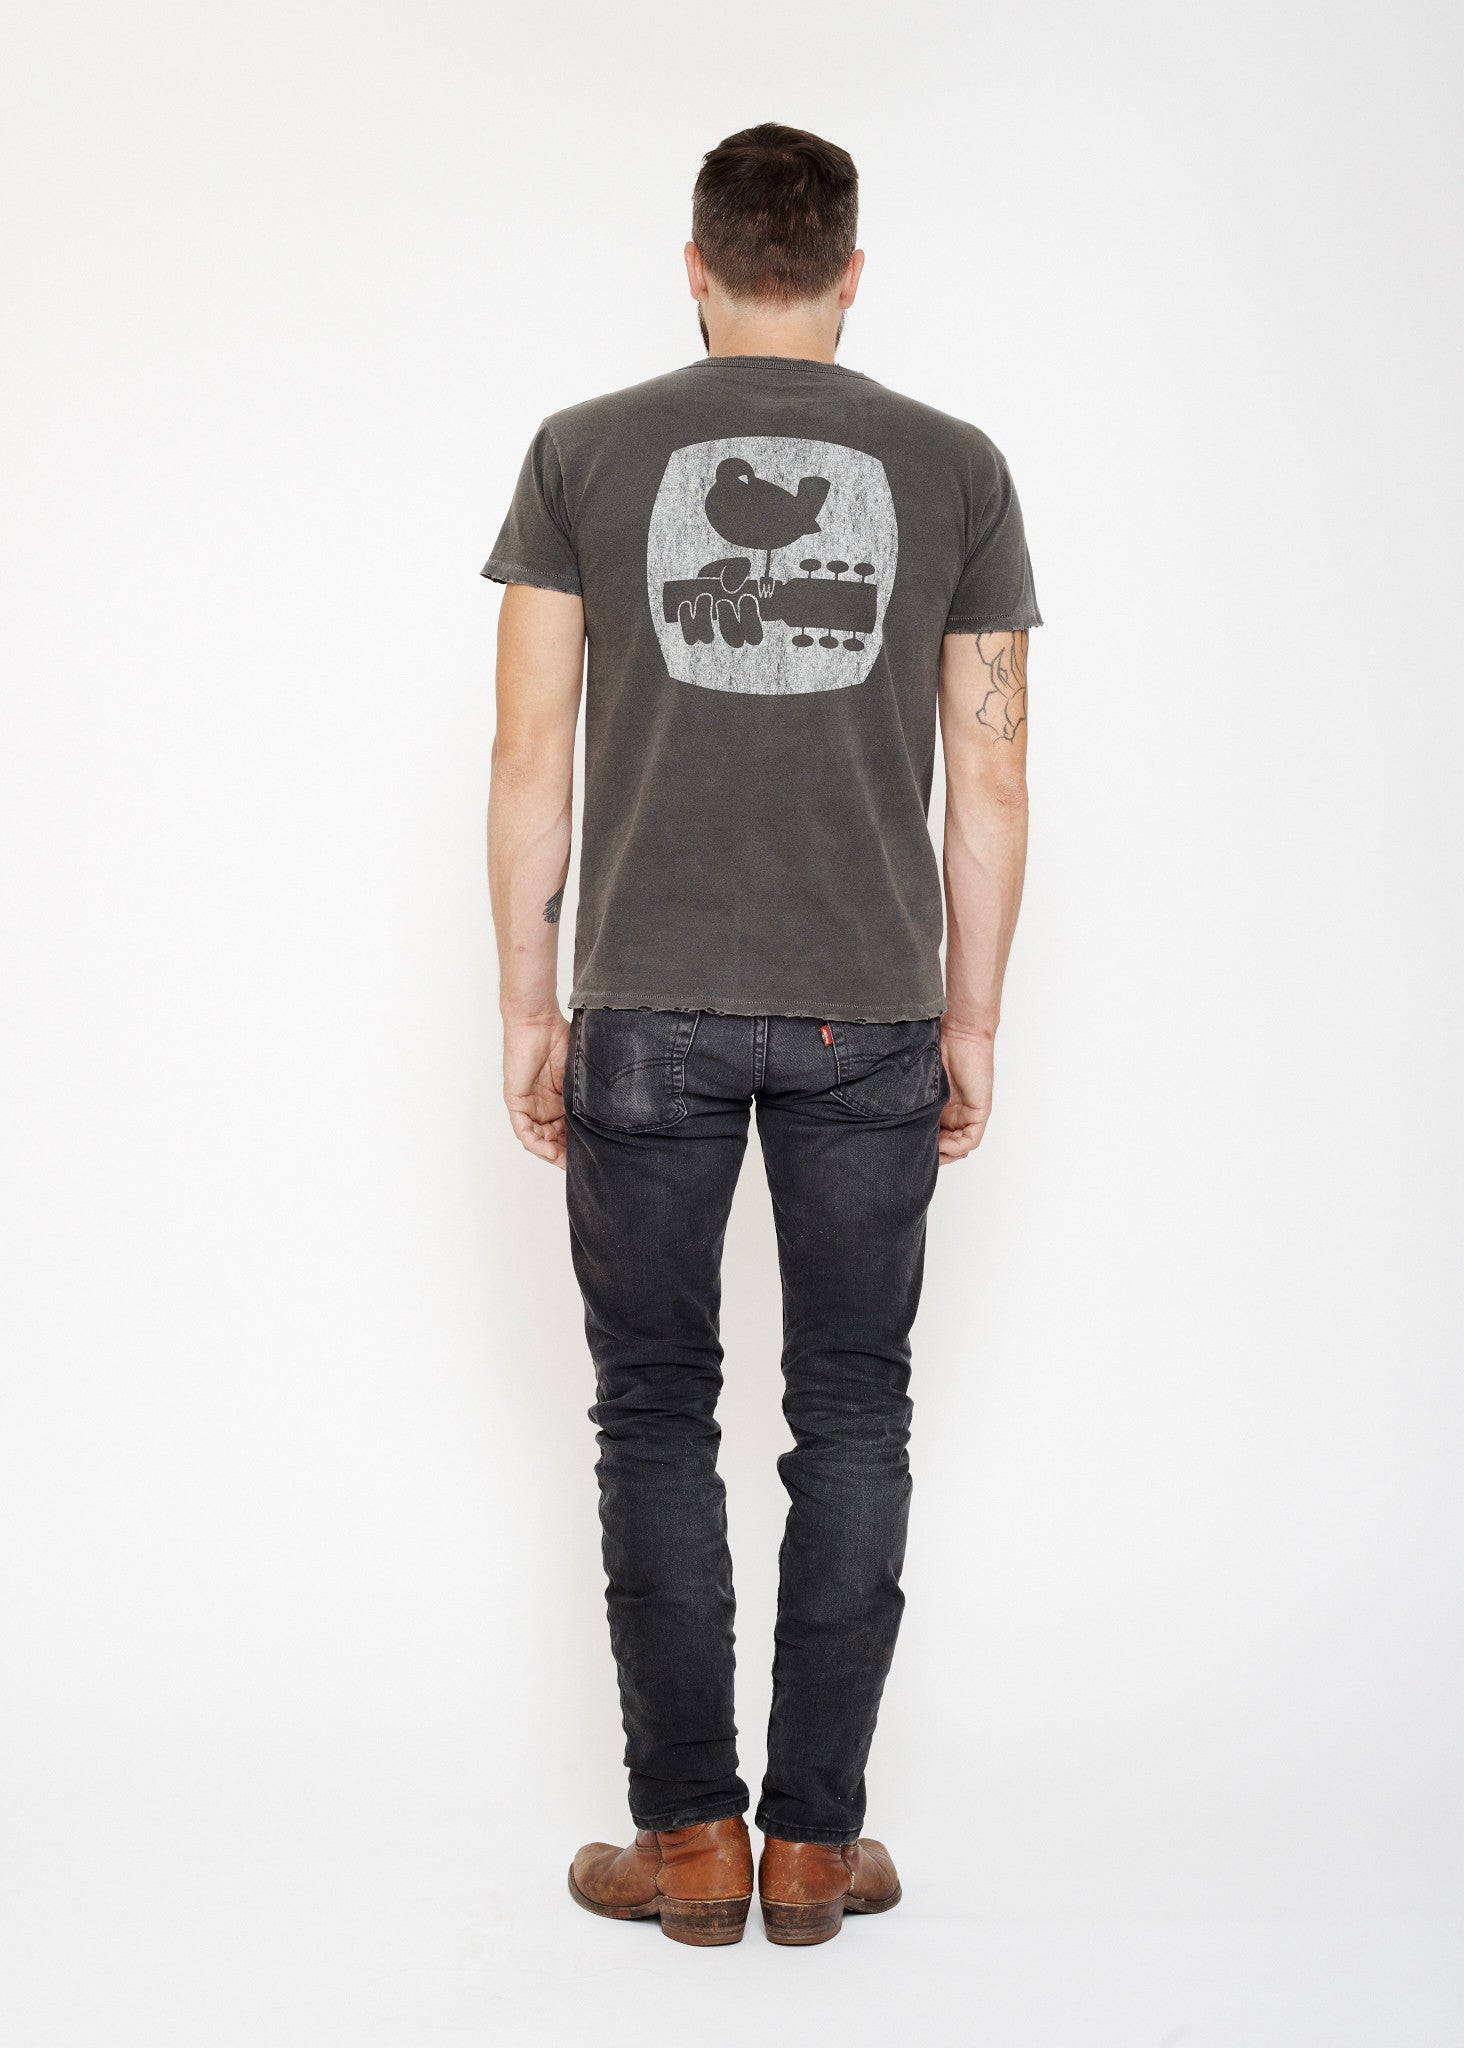 Woodstock  Back Hit Unisex Crew - Vintage Black